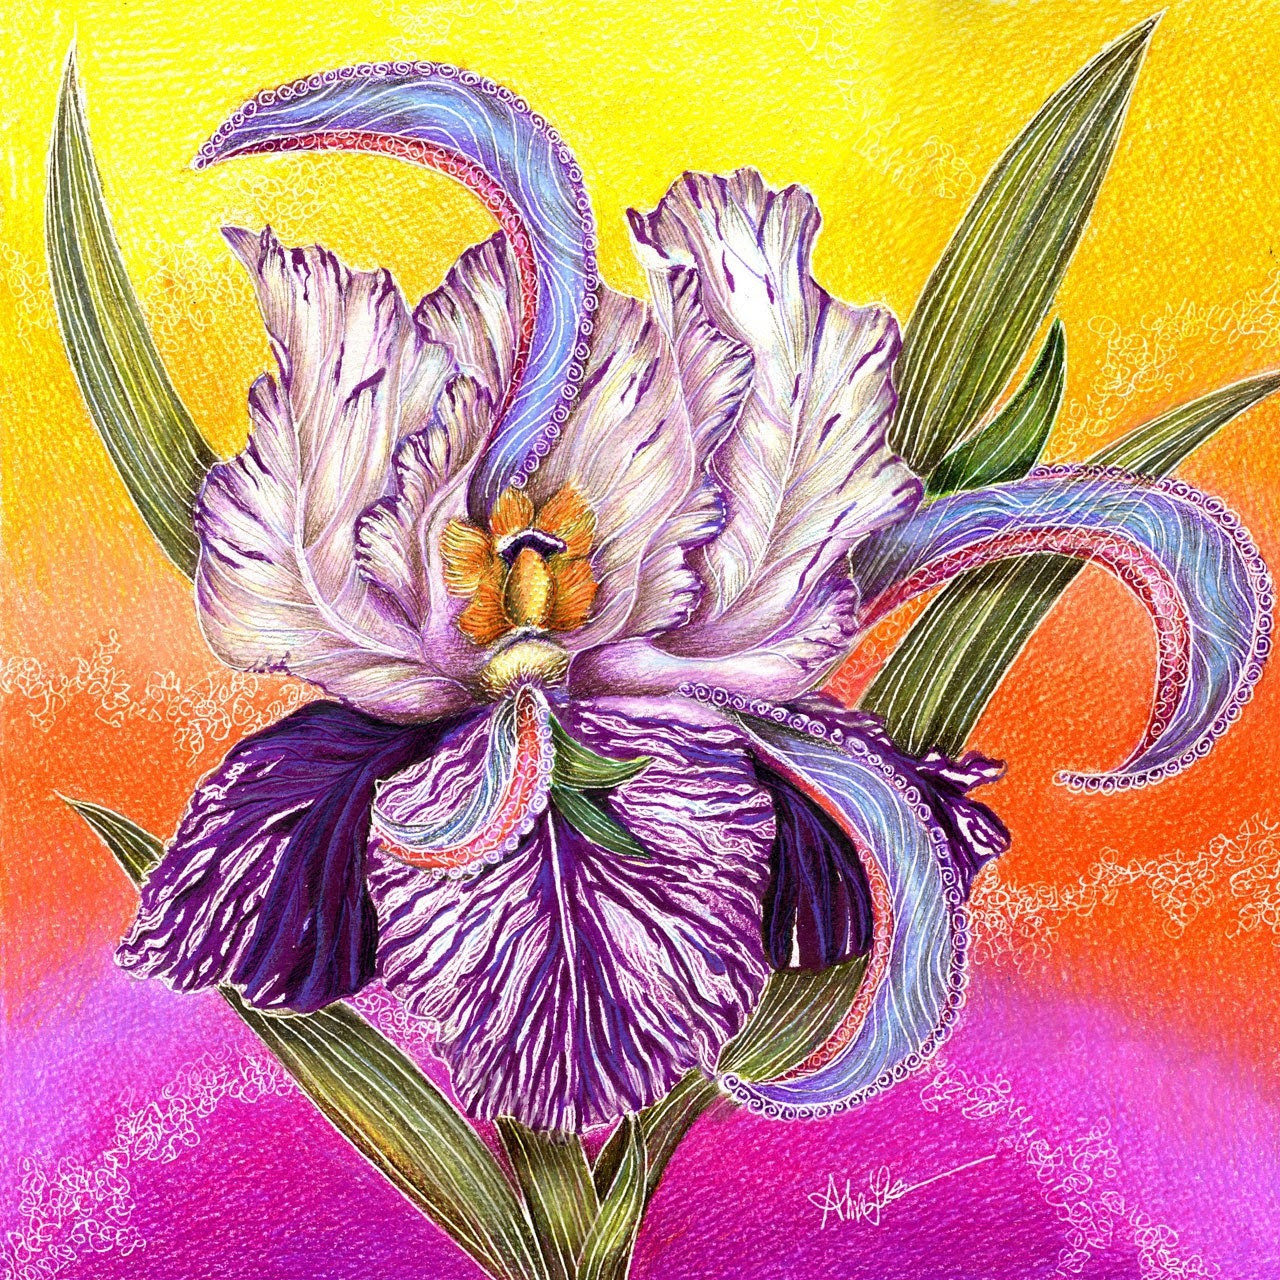 The Paisley Iris, by Alma Lee, Team EBSQ